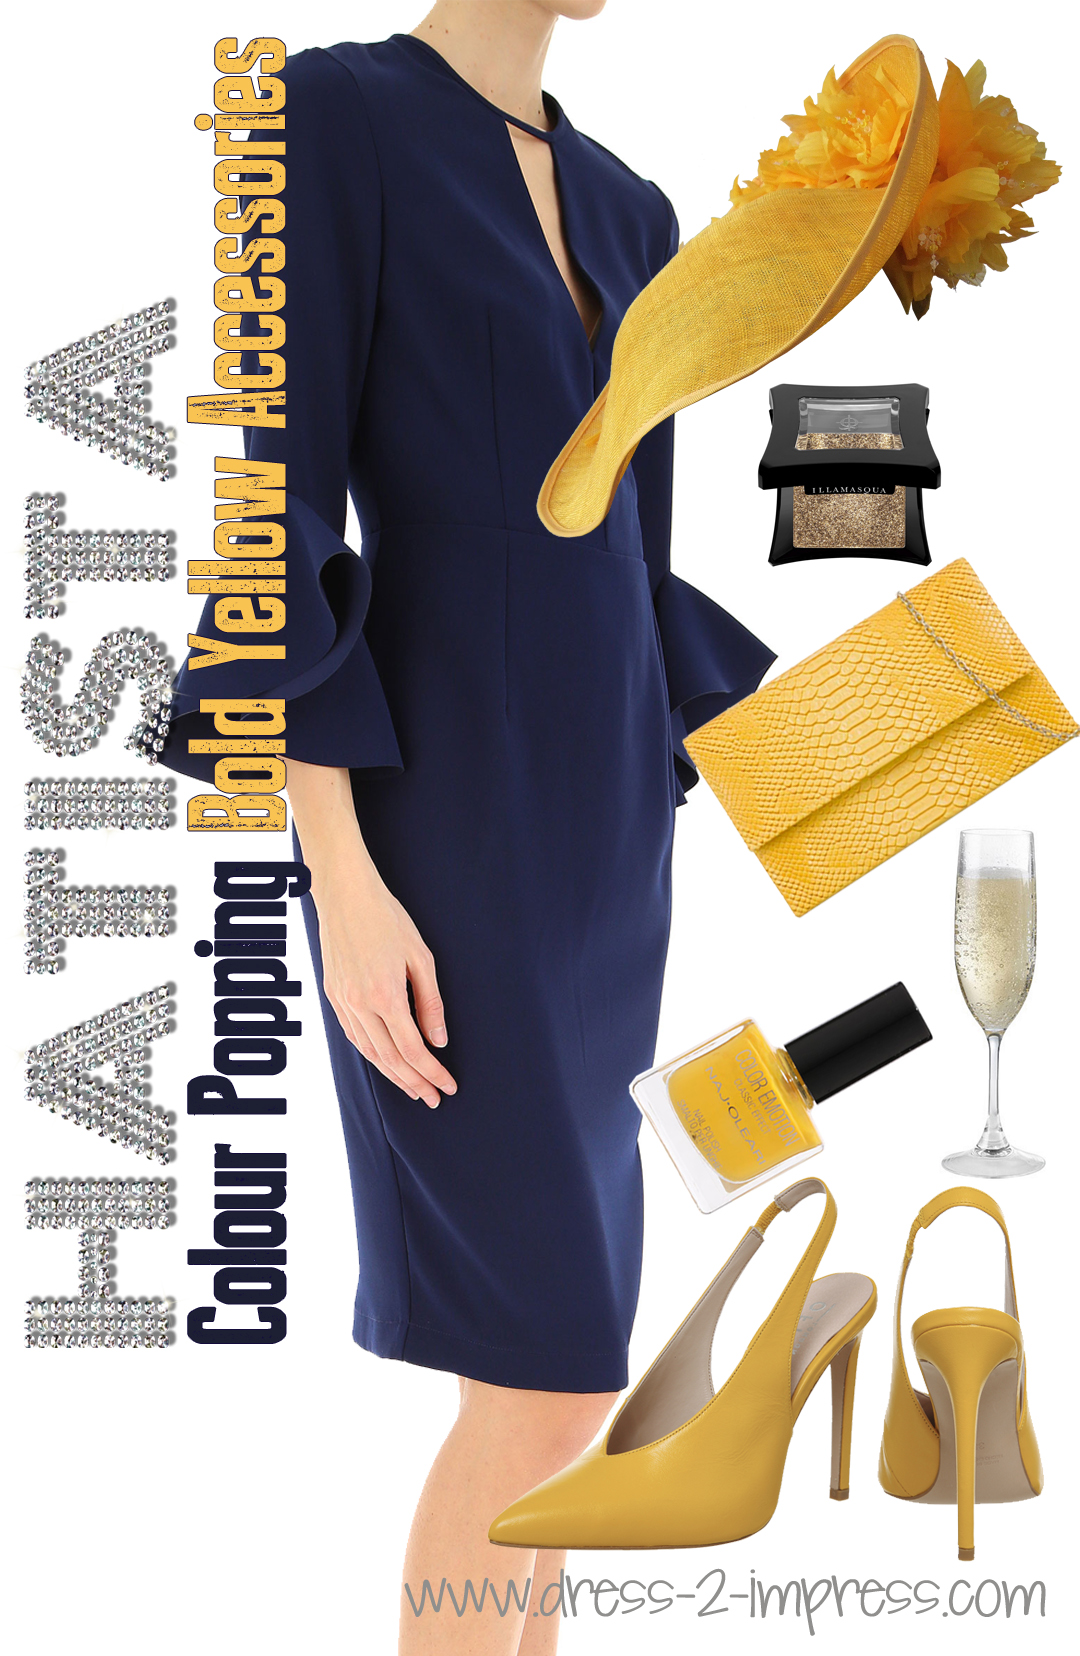 Hatista How To Wear Yellow Outfit Ideas For Wearing Yellow What To Wear To The Races What To Wear For The Kentucky Derby What To Wear For Royal Ascot Ladies Day